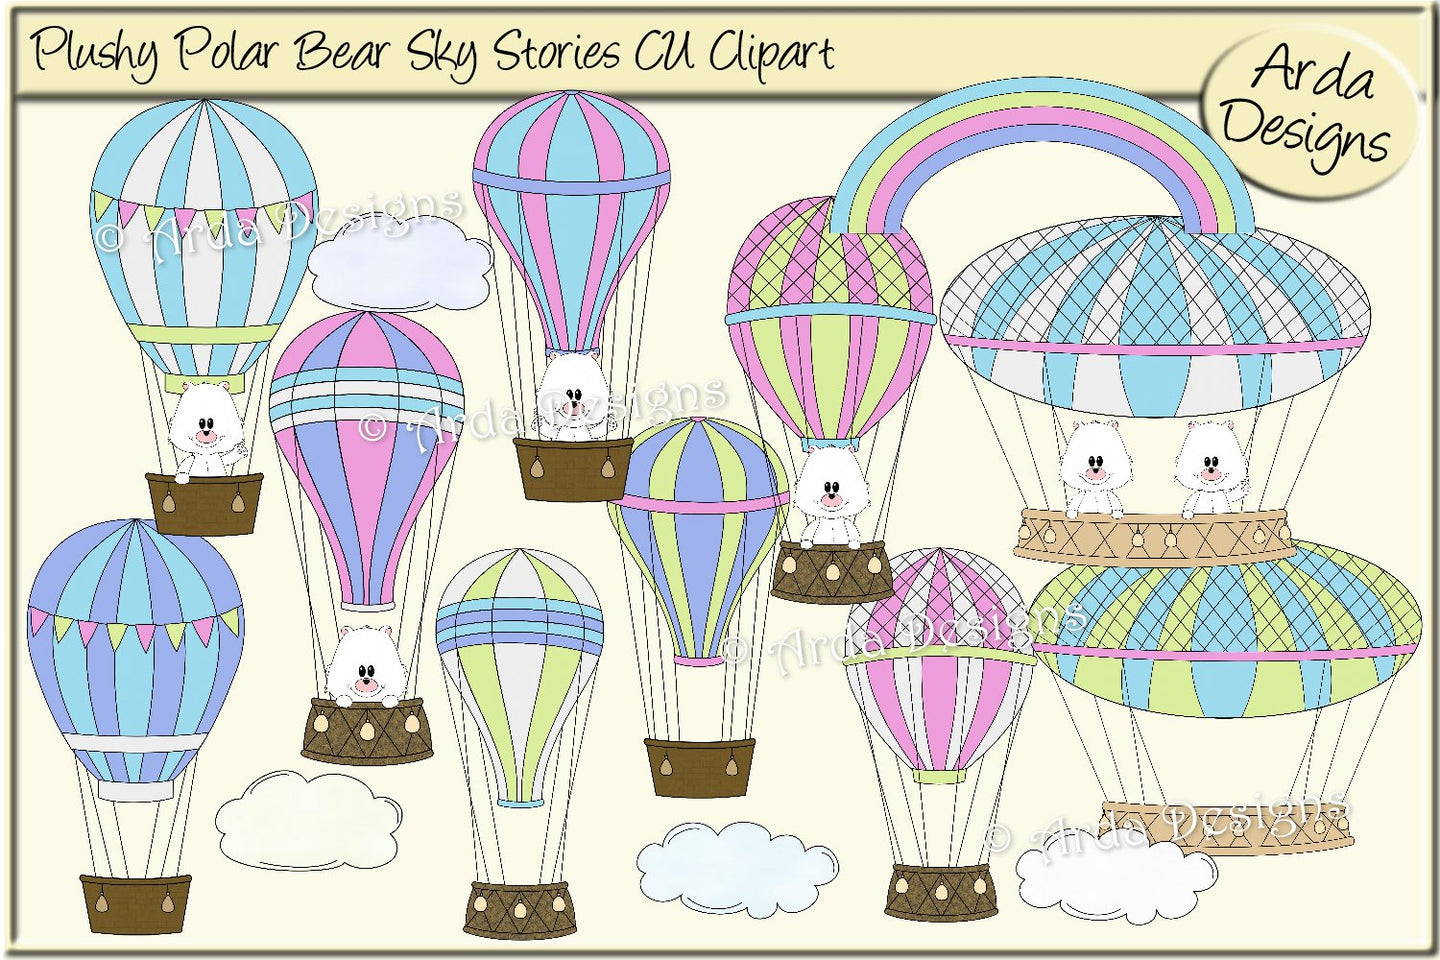 Plushy Polar Bear Sky Stories CU Clipart